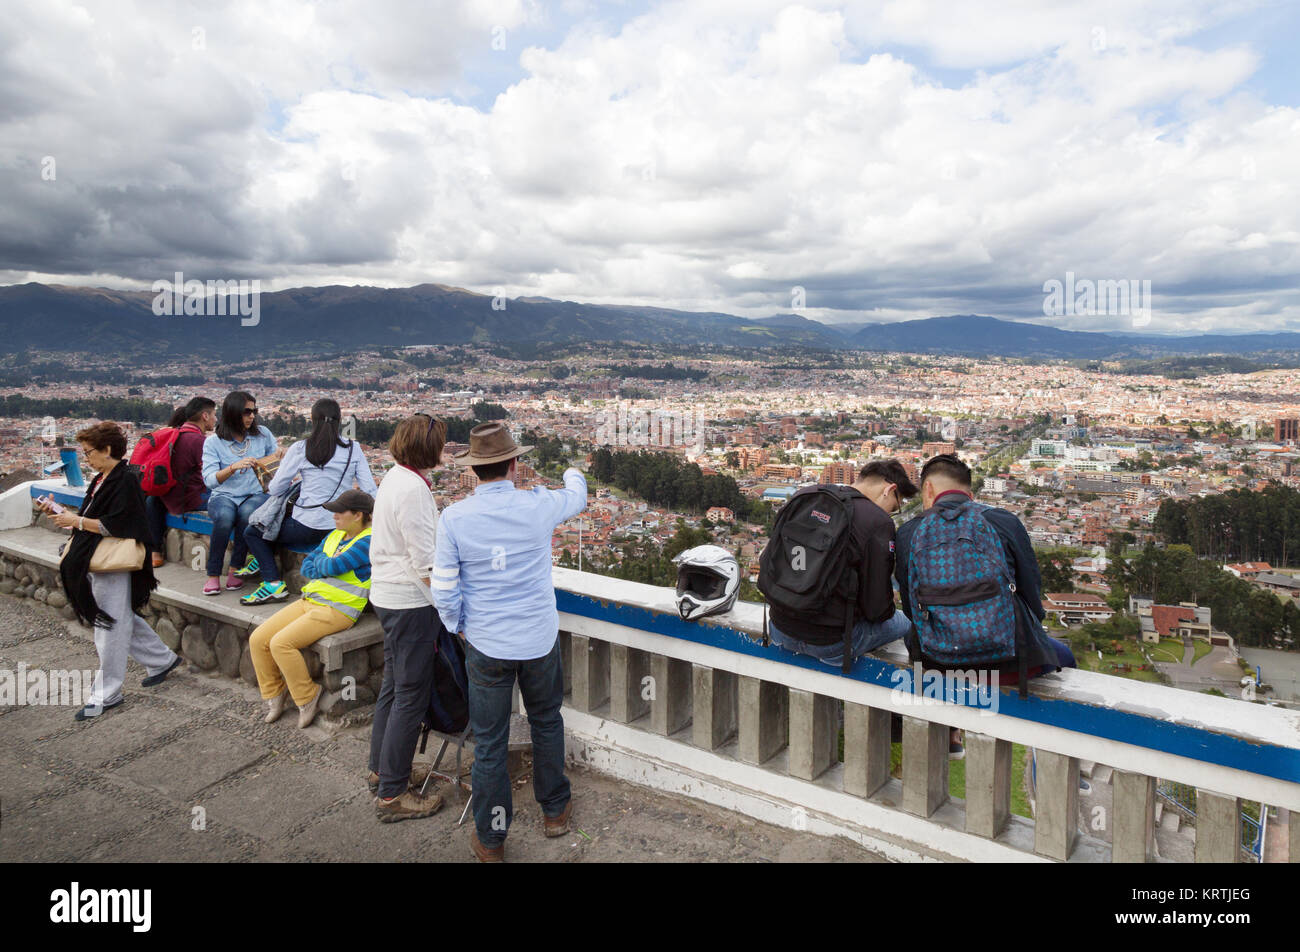 Cuenca Ecuador tourism; a tourist looking out over the city of Cuenca from Turi, Cuenca, Ecuador South America - Stock Image